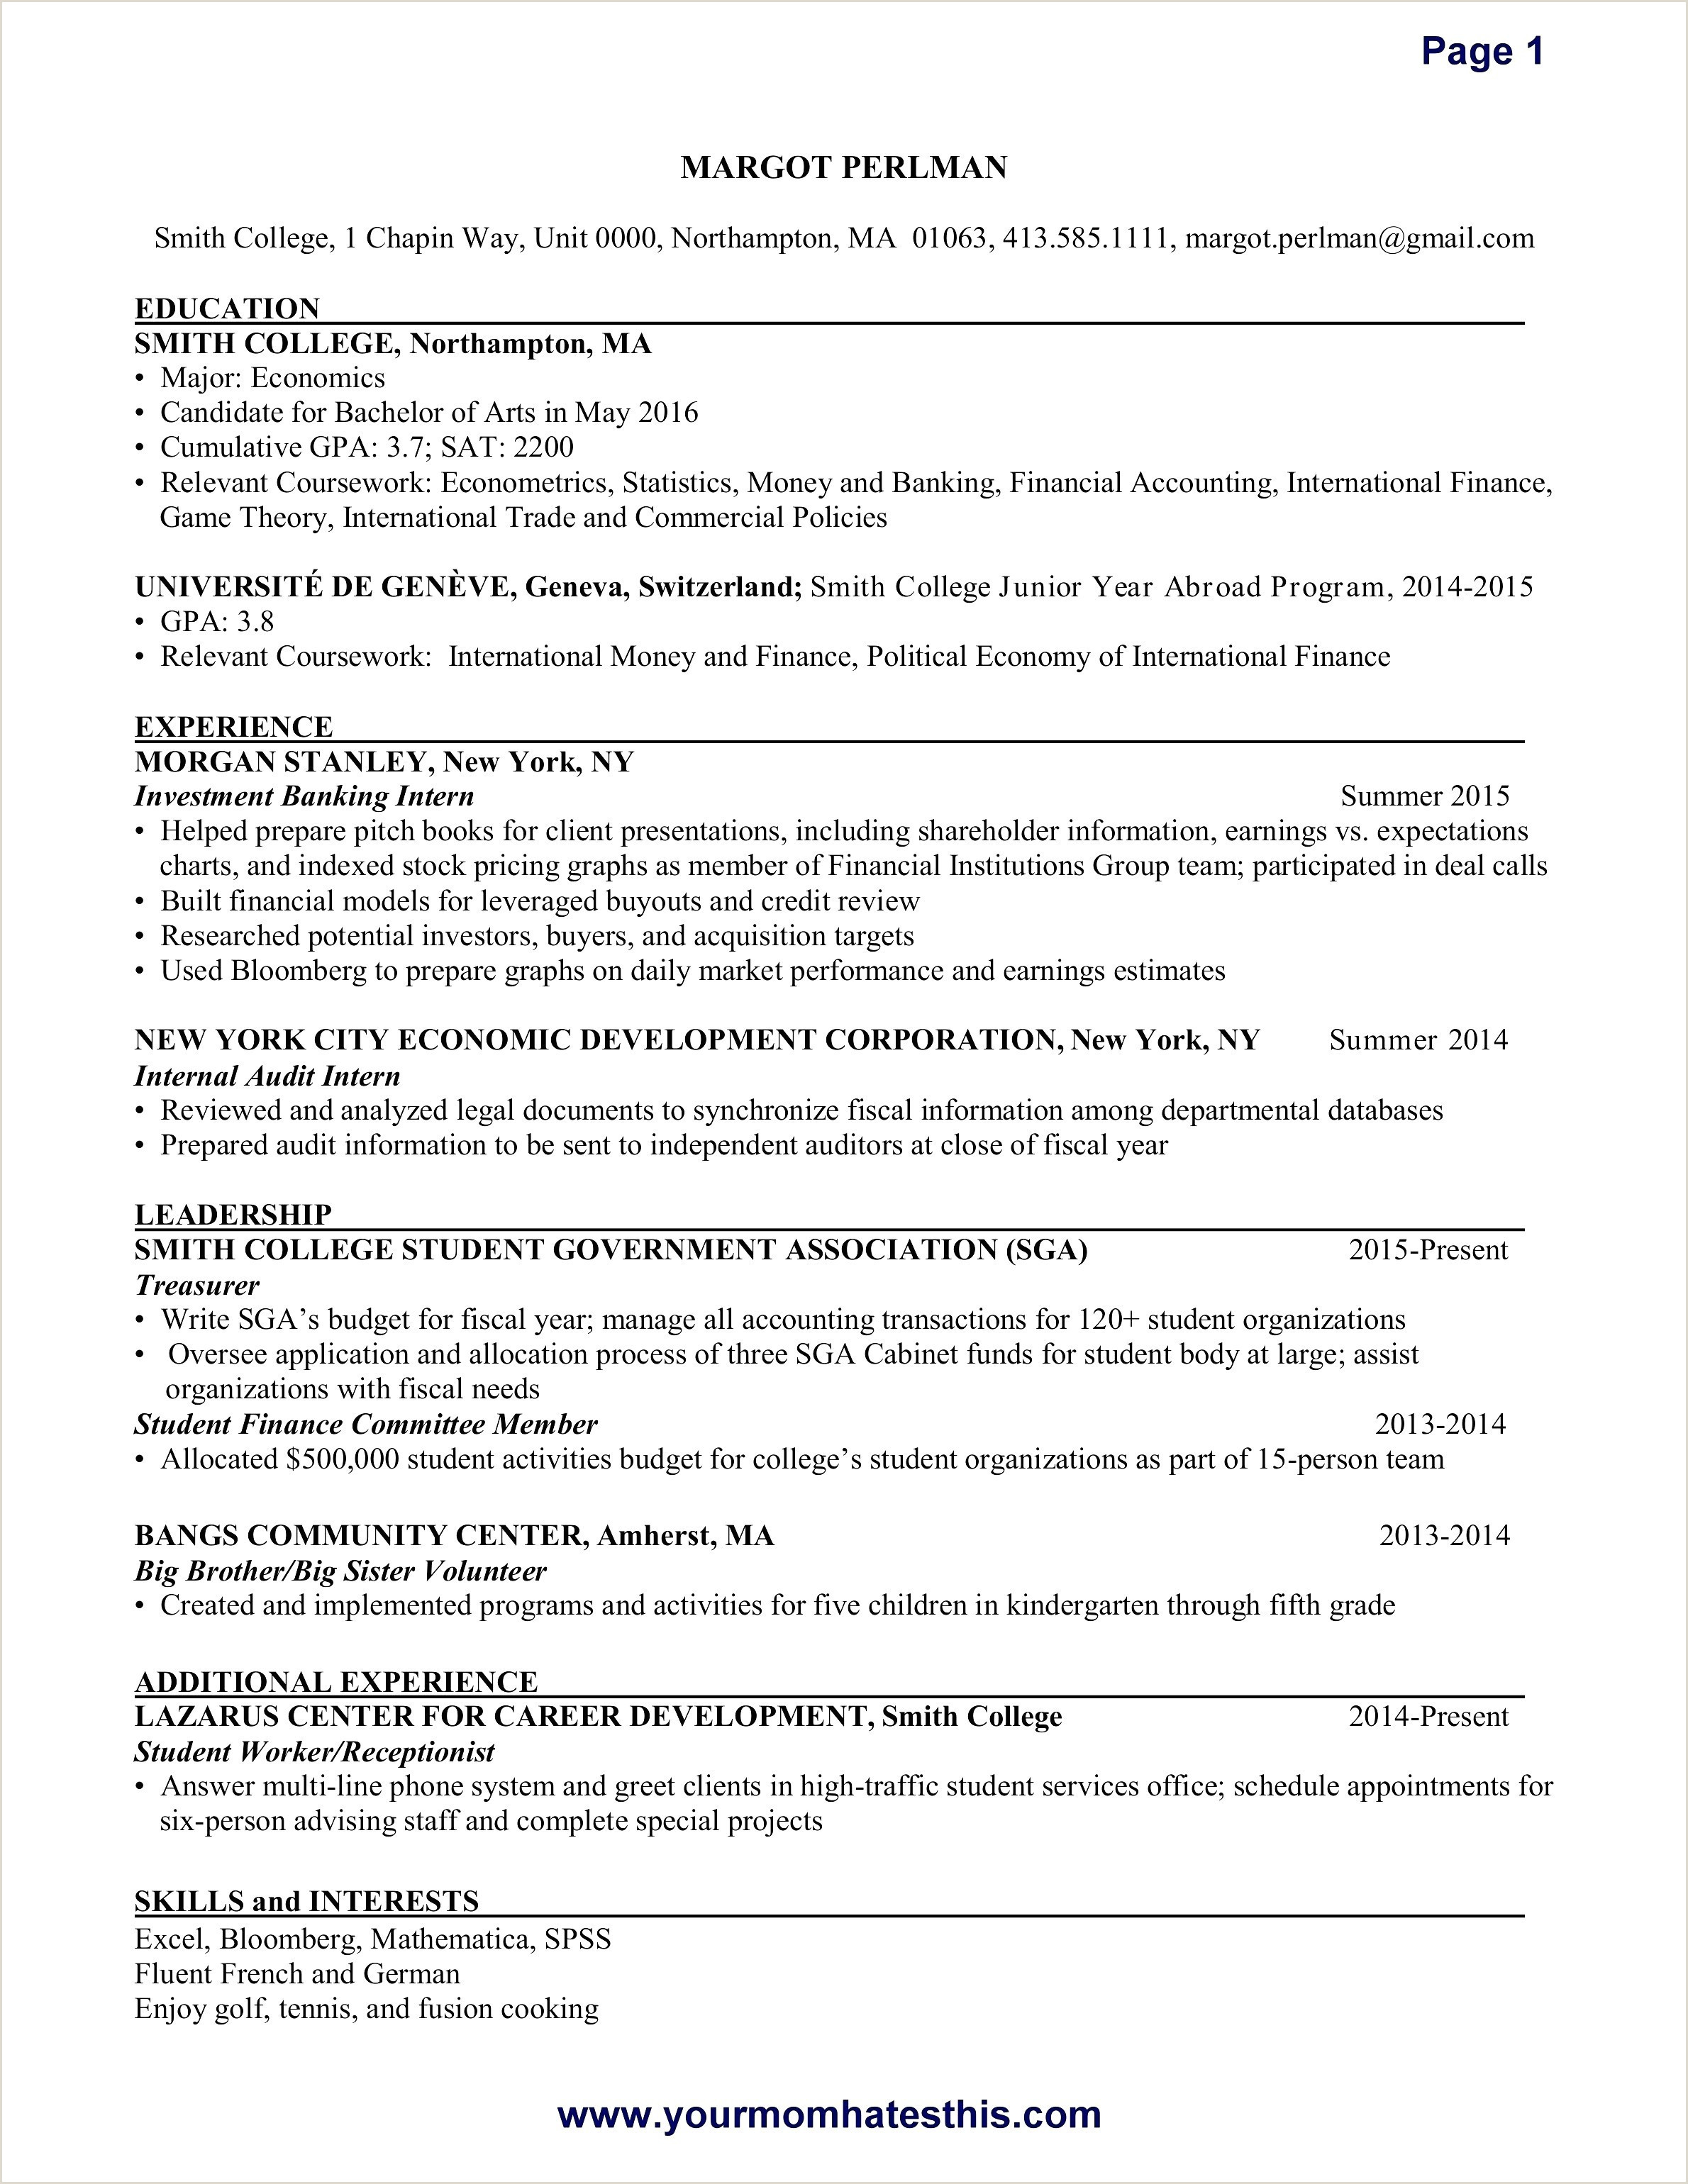 Unique Difference Between Resume and Curriculum Vitae